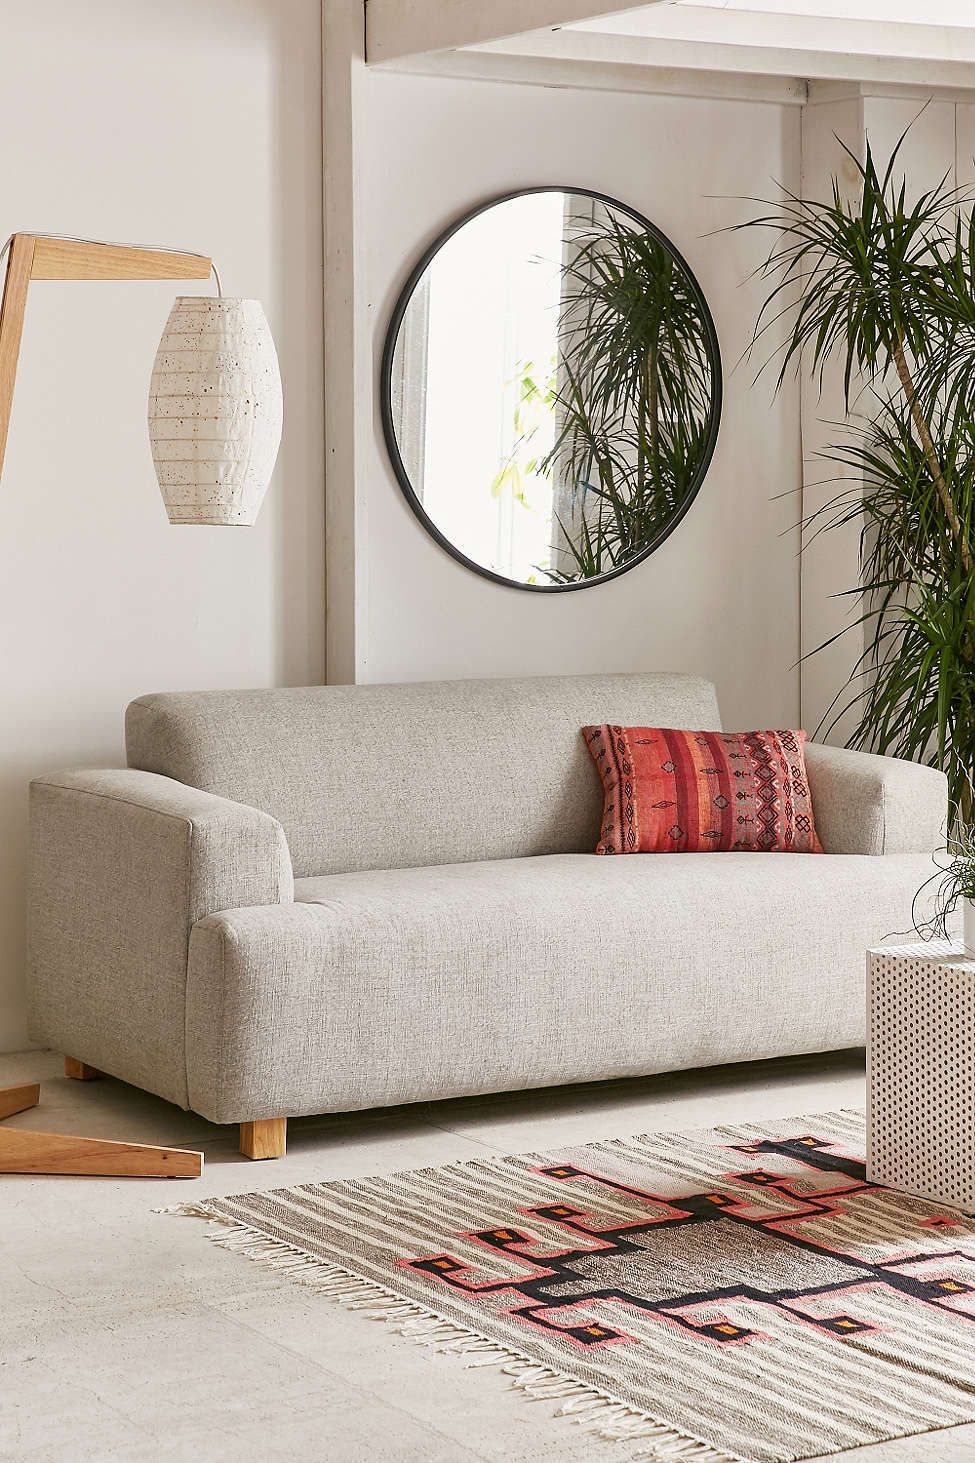 org inspiring sofa velvet klikit about couch urban top sleeper outfitters popular ava with tufted ideas of